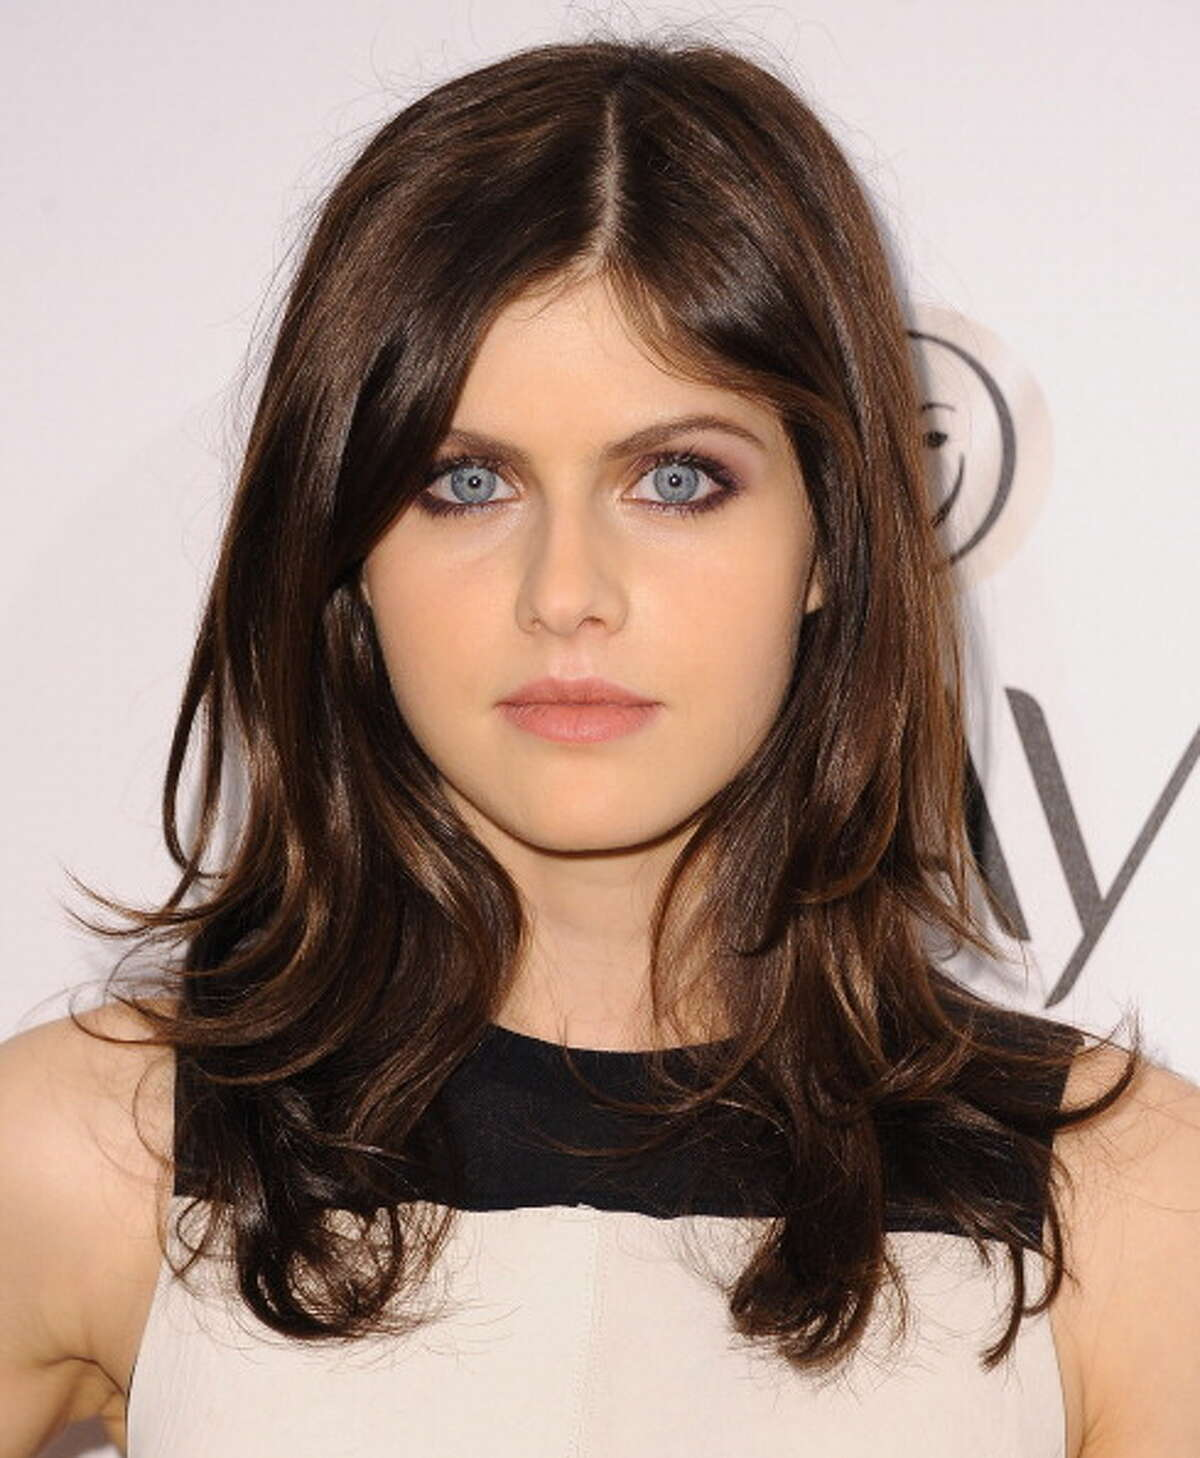 'Percy Jackson' star Alexandria Daddario has eyes that are simply amazing.